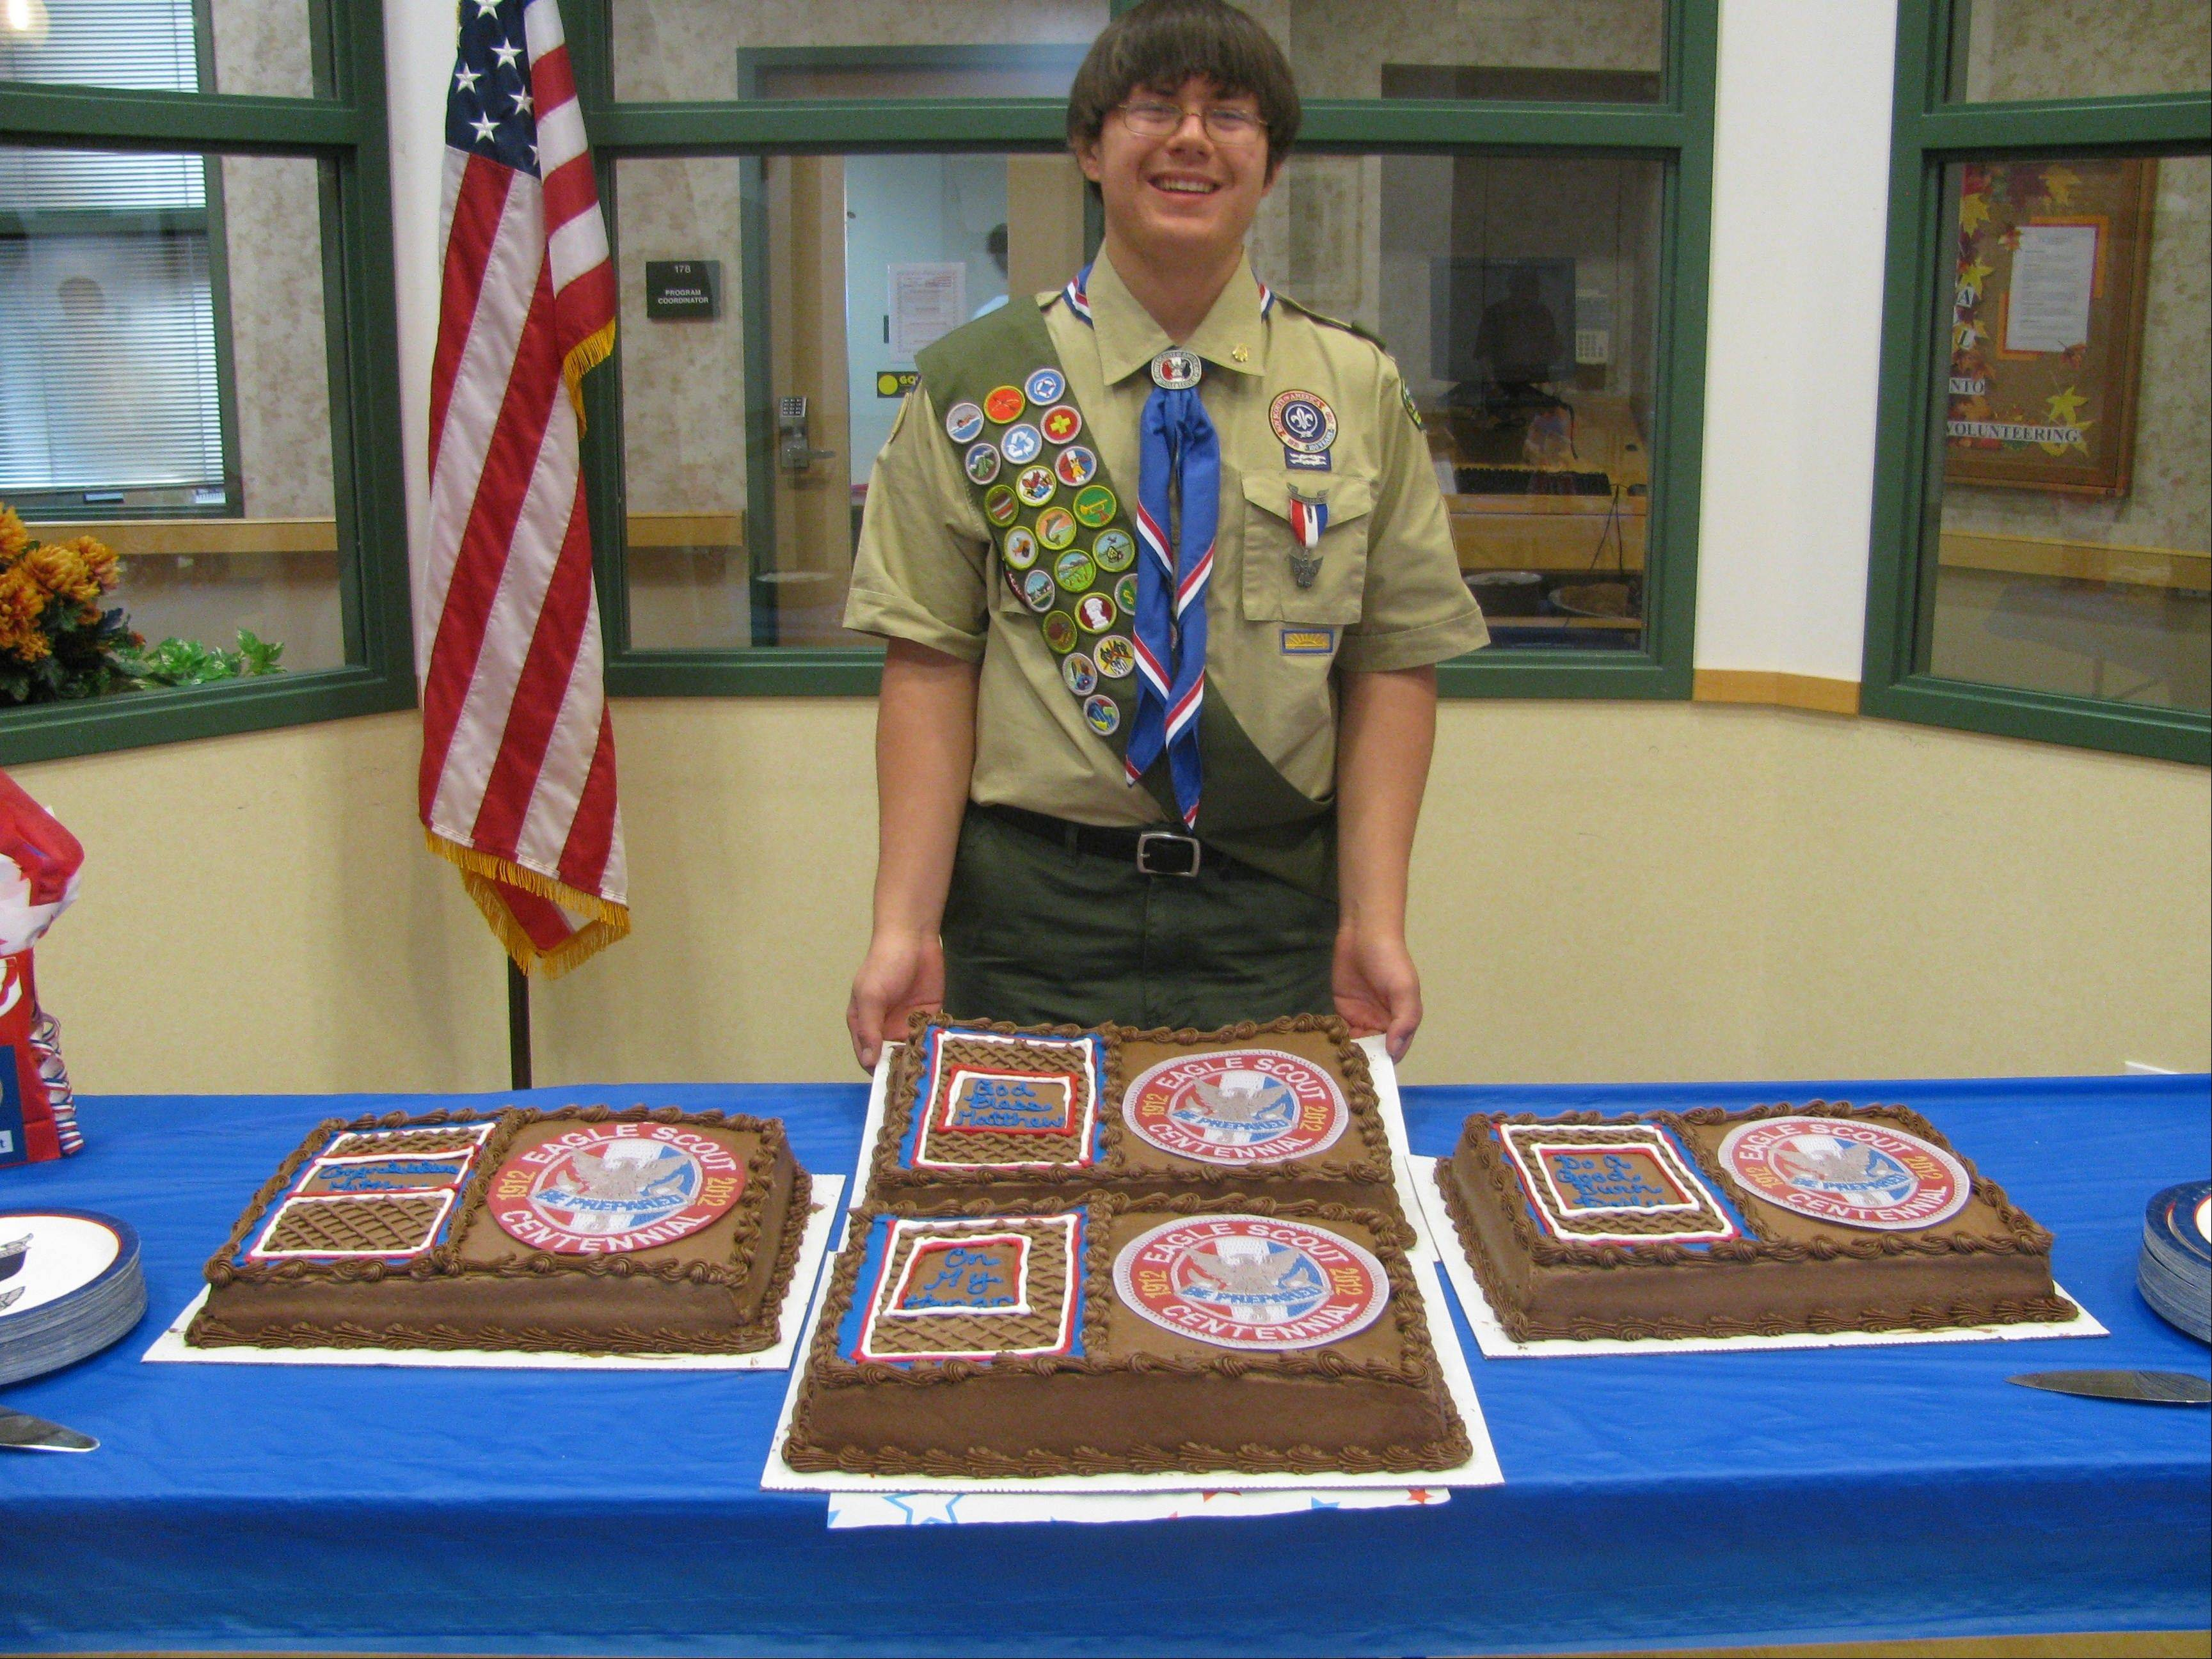 Eagle Scout Matthew J. Wiewel poses with his four Eagle Cakes at his recent Eagle Court of Honor.